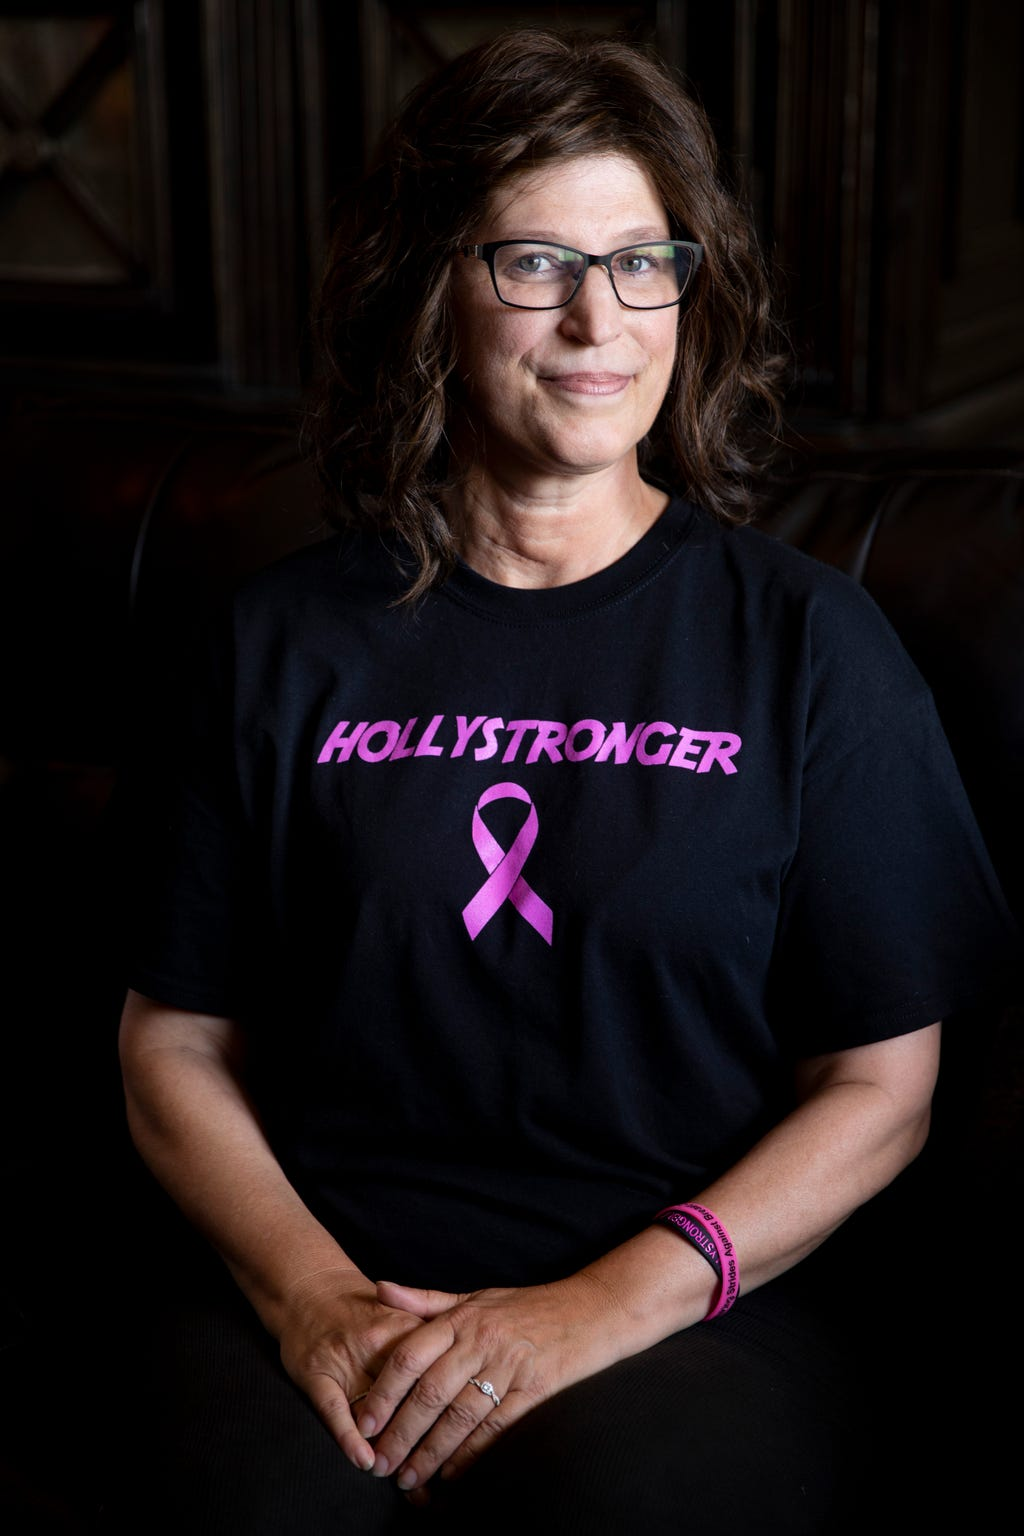 Holly DiGilarmo poses for a portrait at her home in Bonita Springs on Wednesday, September 25, 2019. DiGilarmo was diagnosed with stage two breast cancer in 2018 and has undergone multiple surgeries, chemotherapy, and radiation treatment since then.